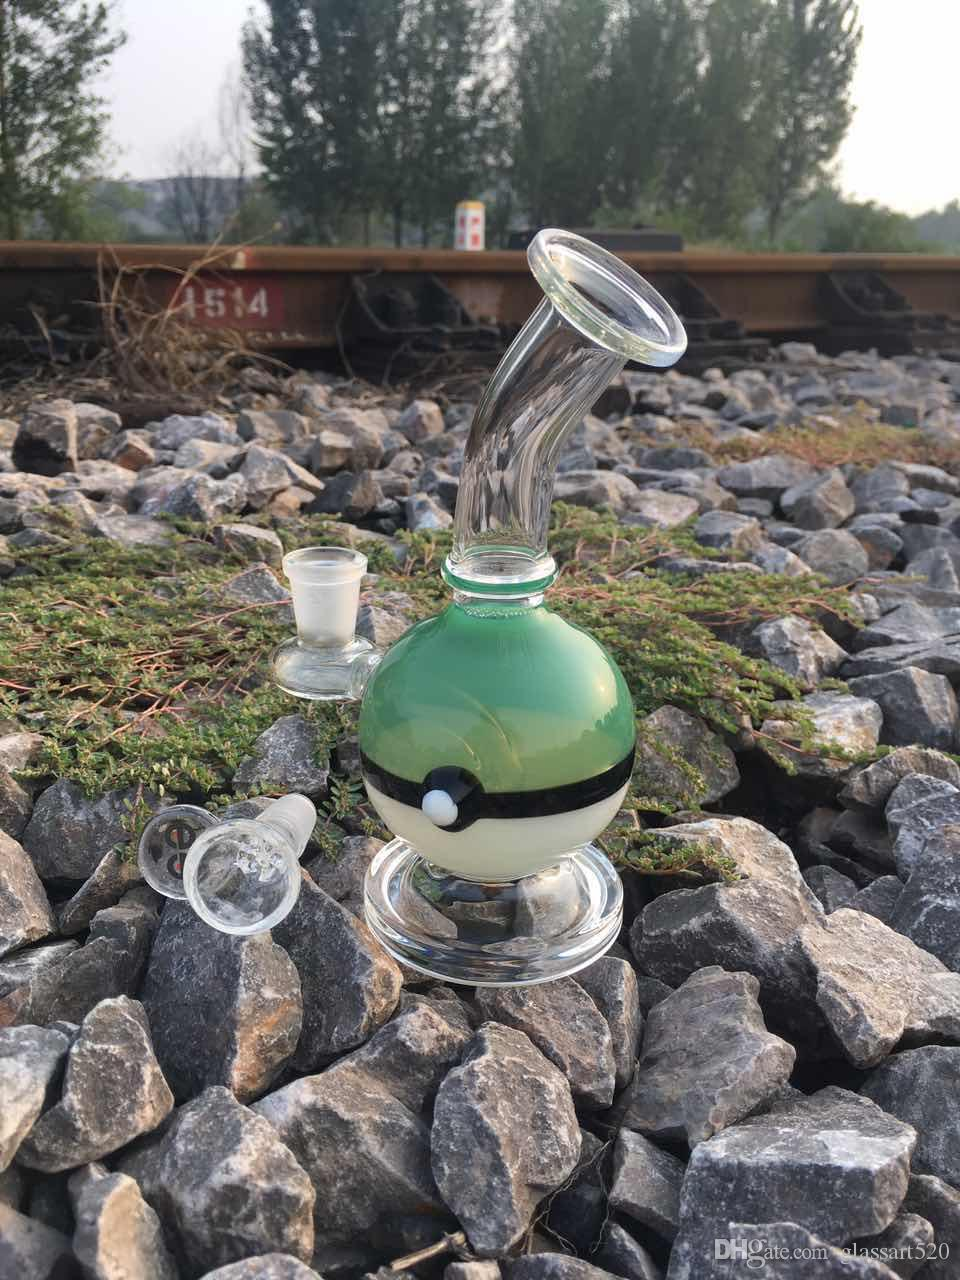 """2016 October Newest glass Bongs 8"""" 2016 brand new jamaican american 8""""glass bong 14mm glass oil rigs."""